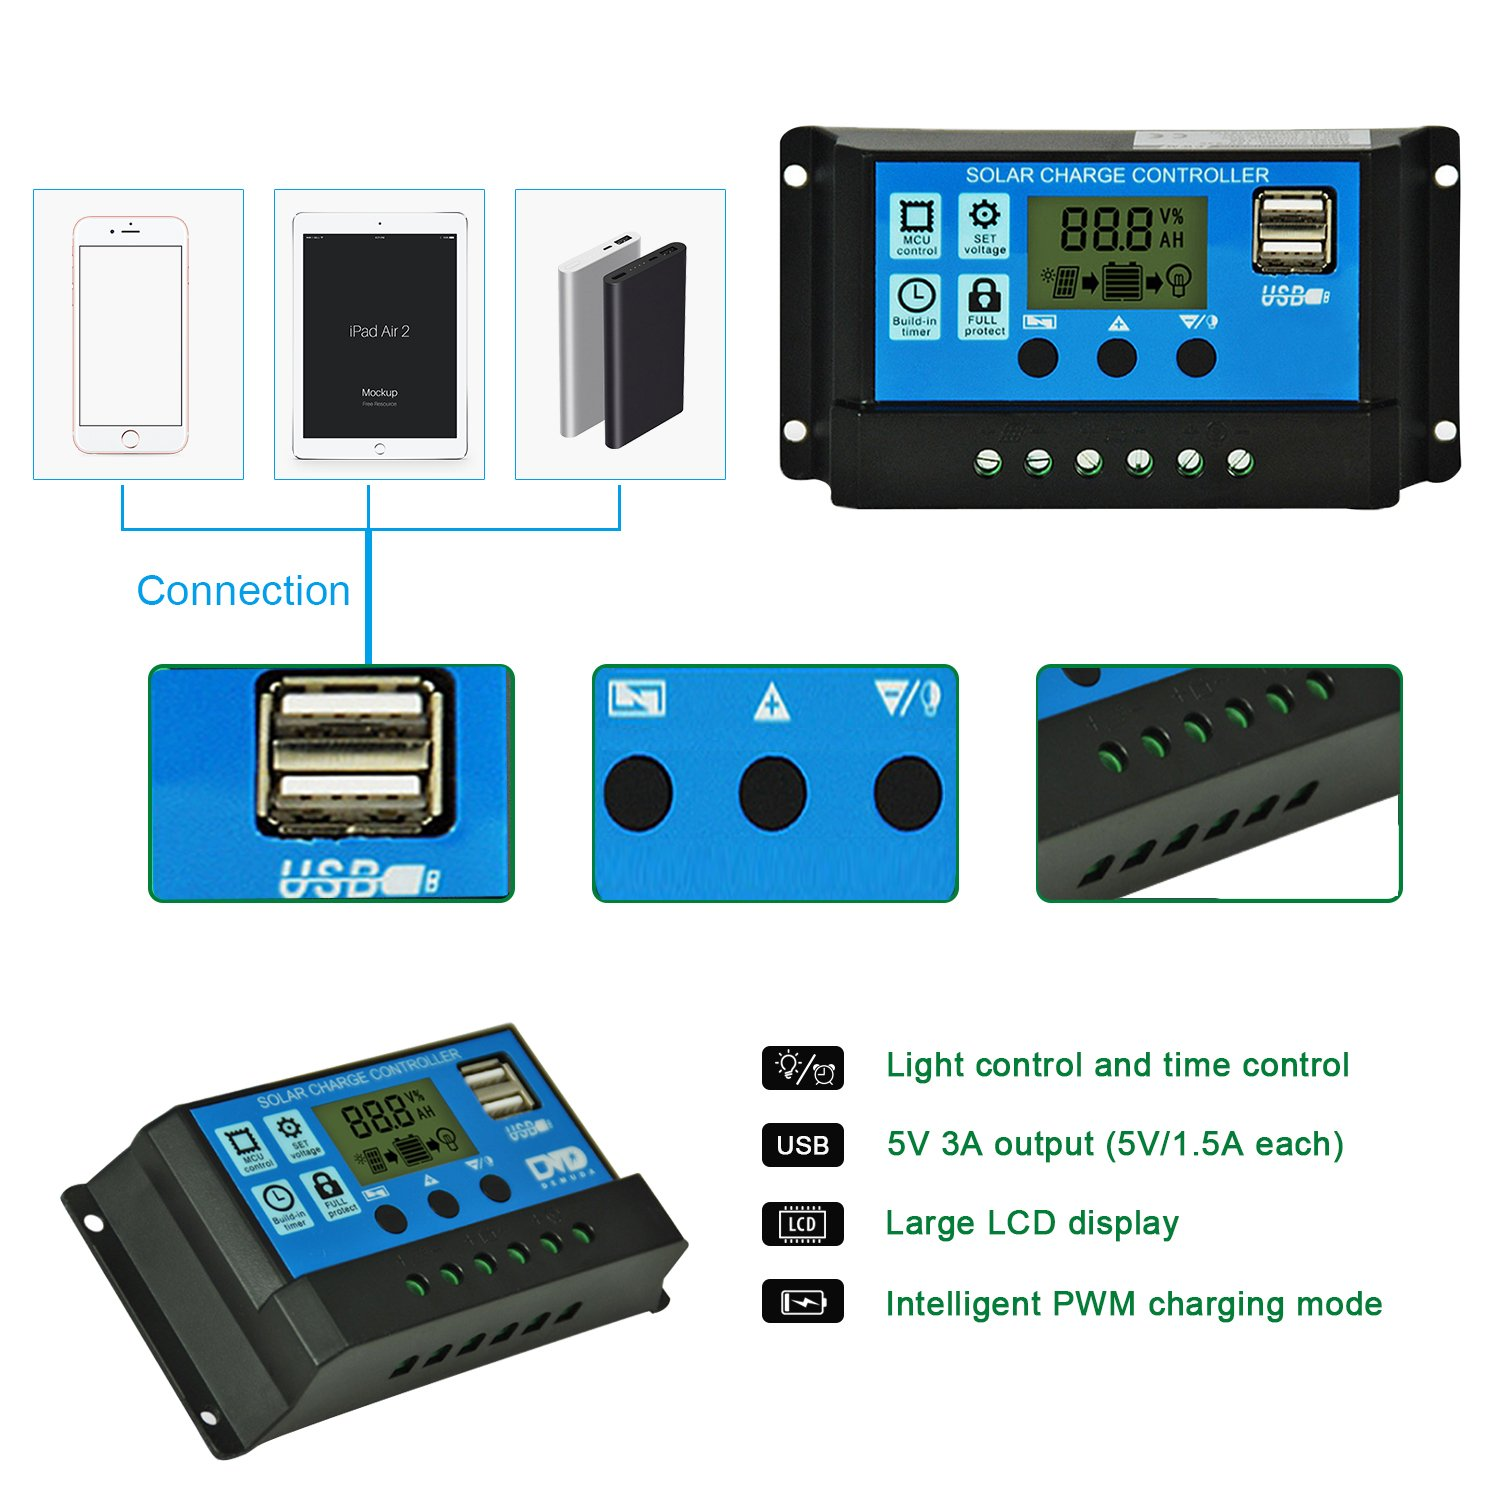 Solar Charge Controller 20a Panel Battery Pwm 10a 12v24v Automatic Art Of Circuits 12v 24v Intelligent Regulator Adjustable Lcd Display With Dual